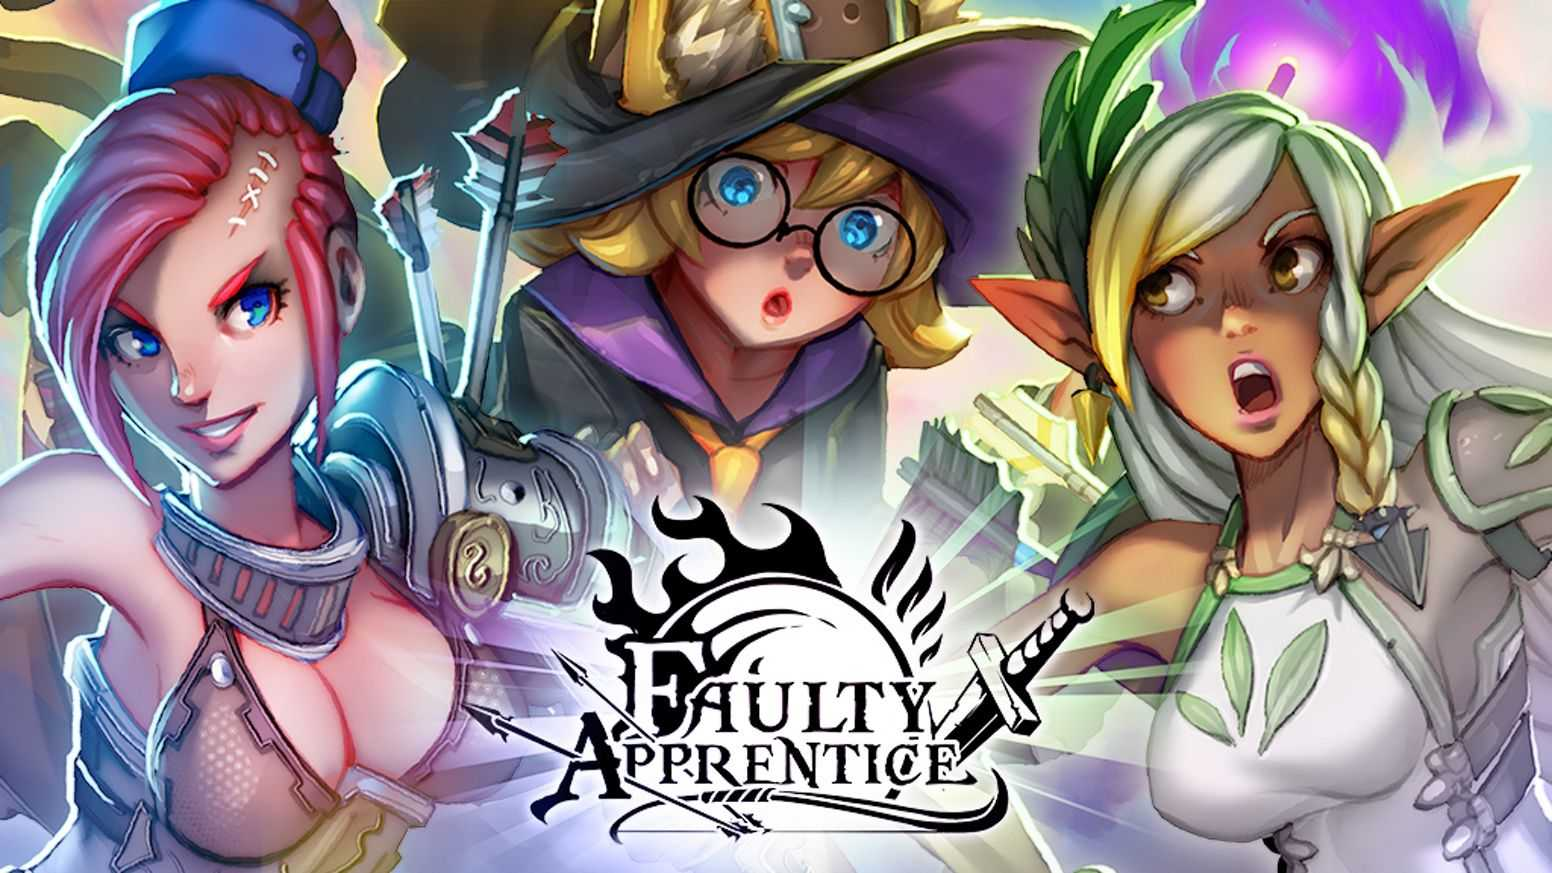 faulty-apprentice-fantasy-visual-novel-dating-sim